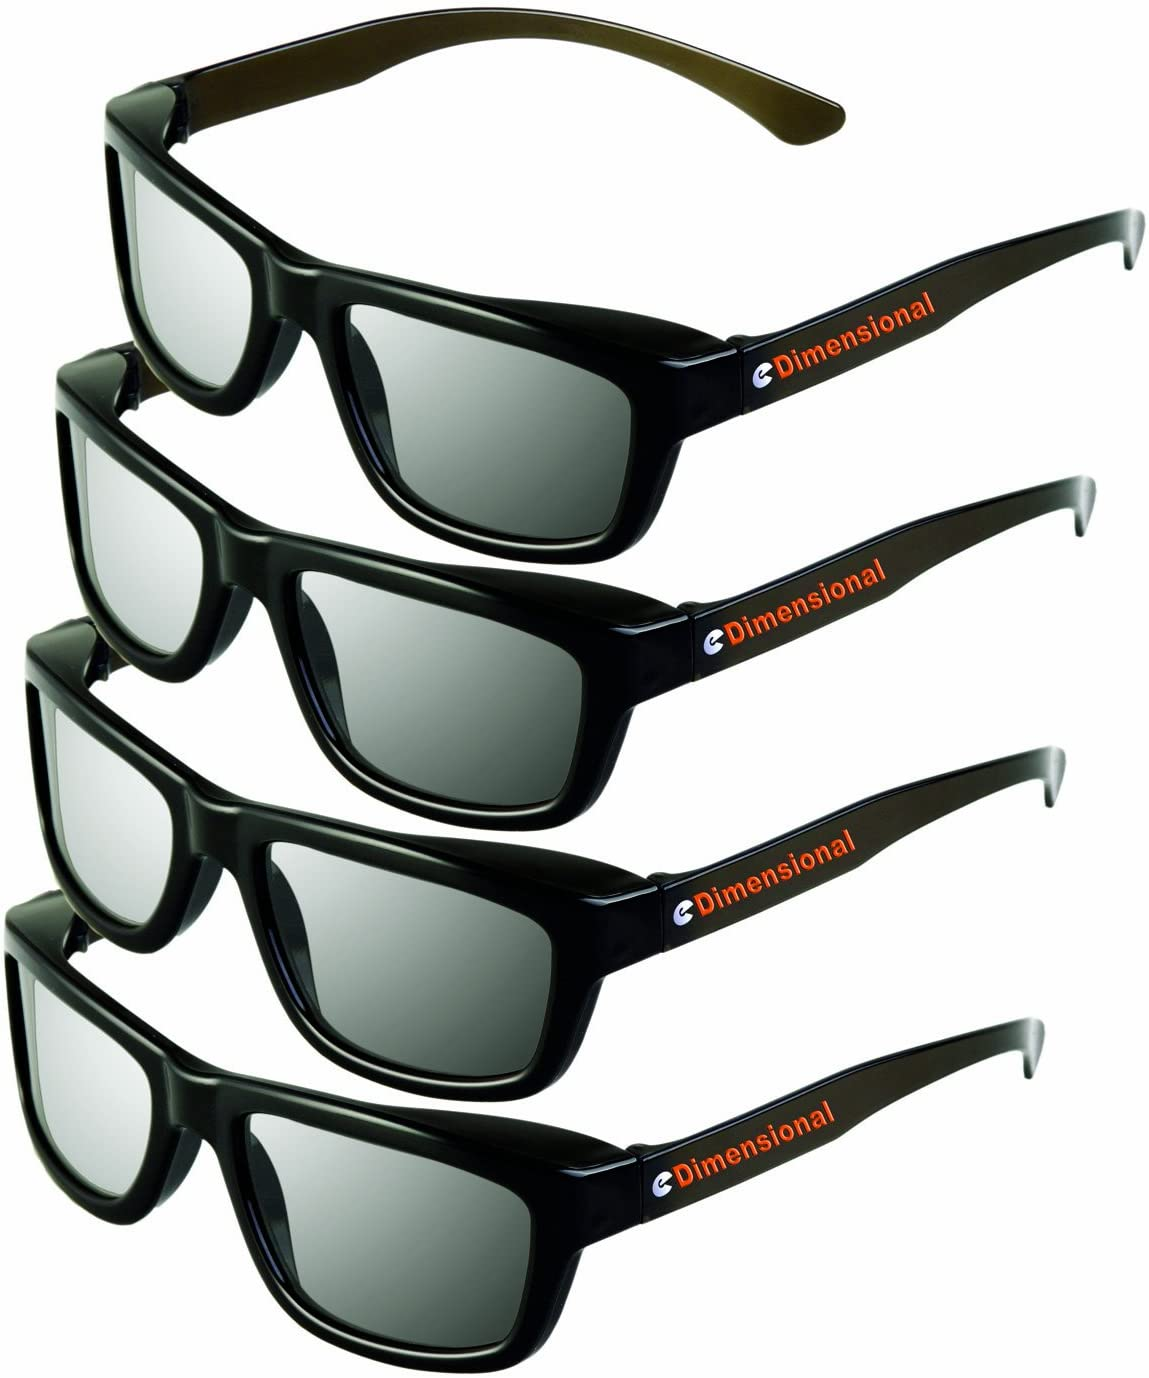 ED DUAL PLAY Adult 4 Pack - LG AG-F310DP + AG-F400DP Cinema 3D Dual Play Compatible Gaming Glasses 4 Adult Glasses